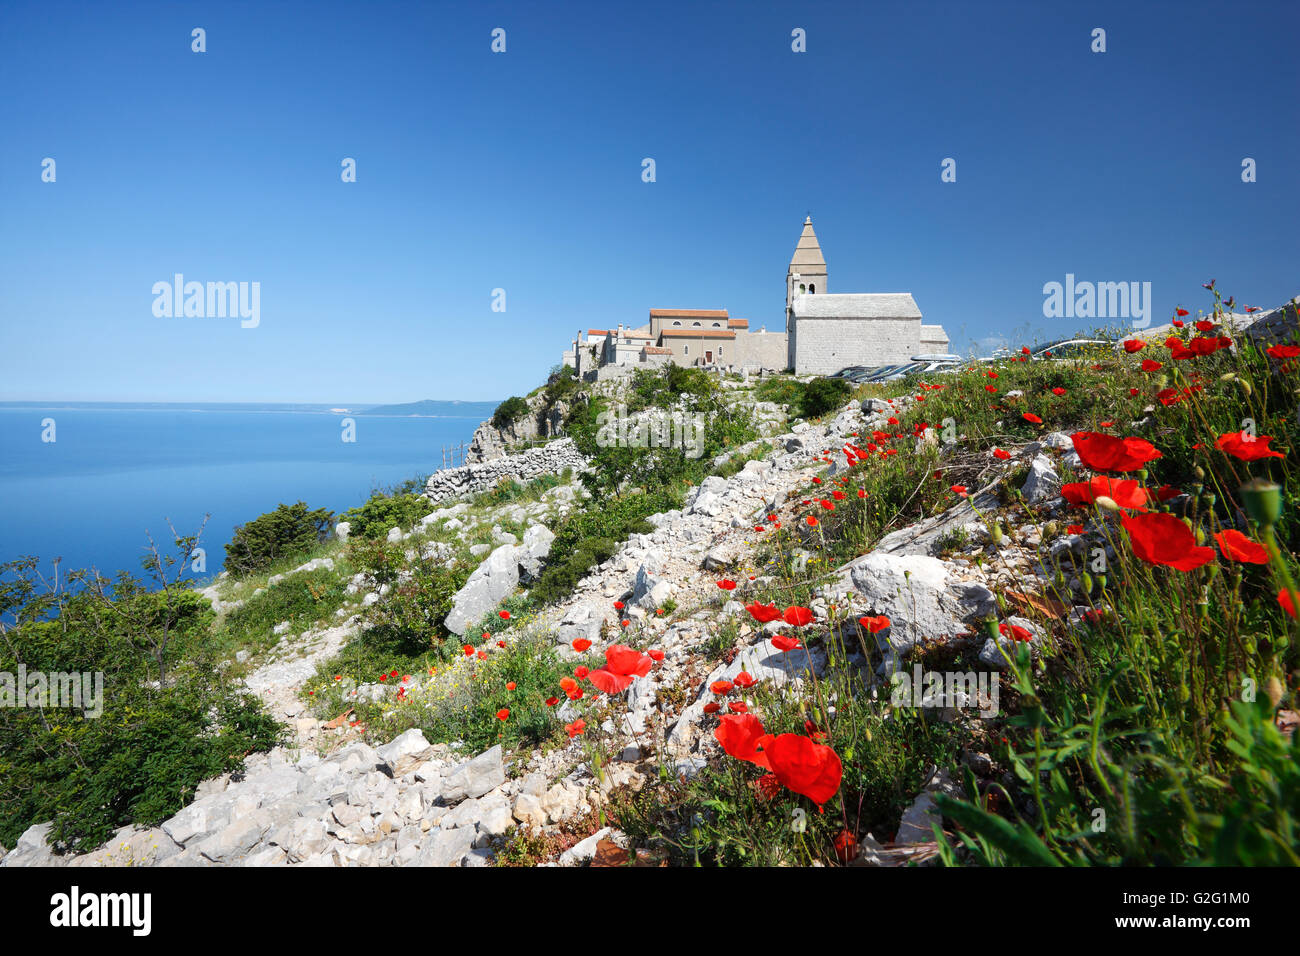 The hilly Lubenice town on the Island of Cres with poppy flowers in the front - Stock Image